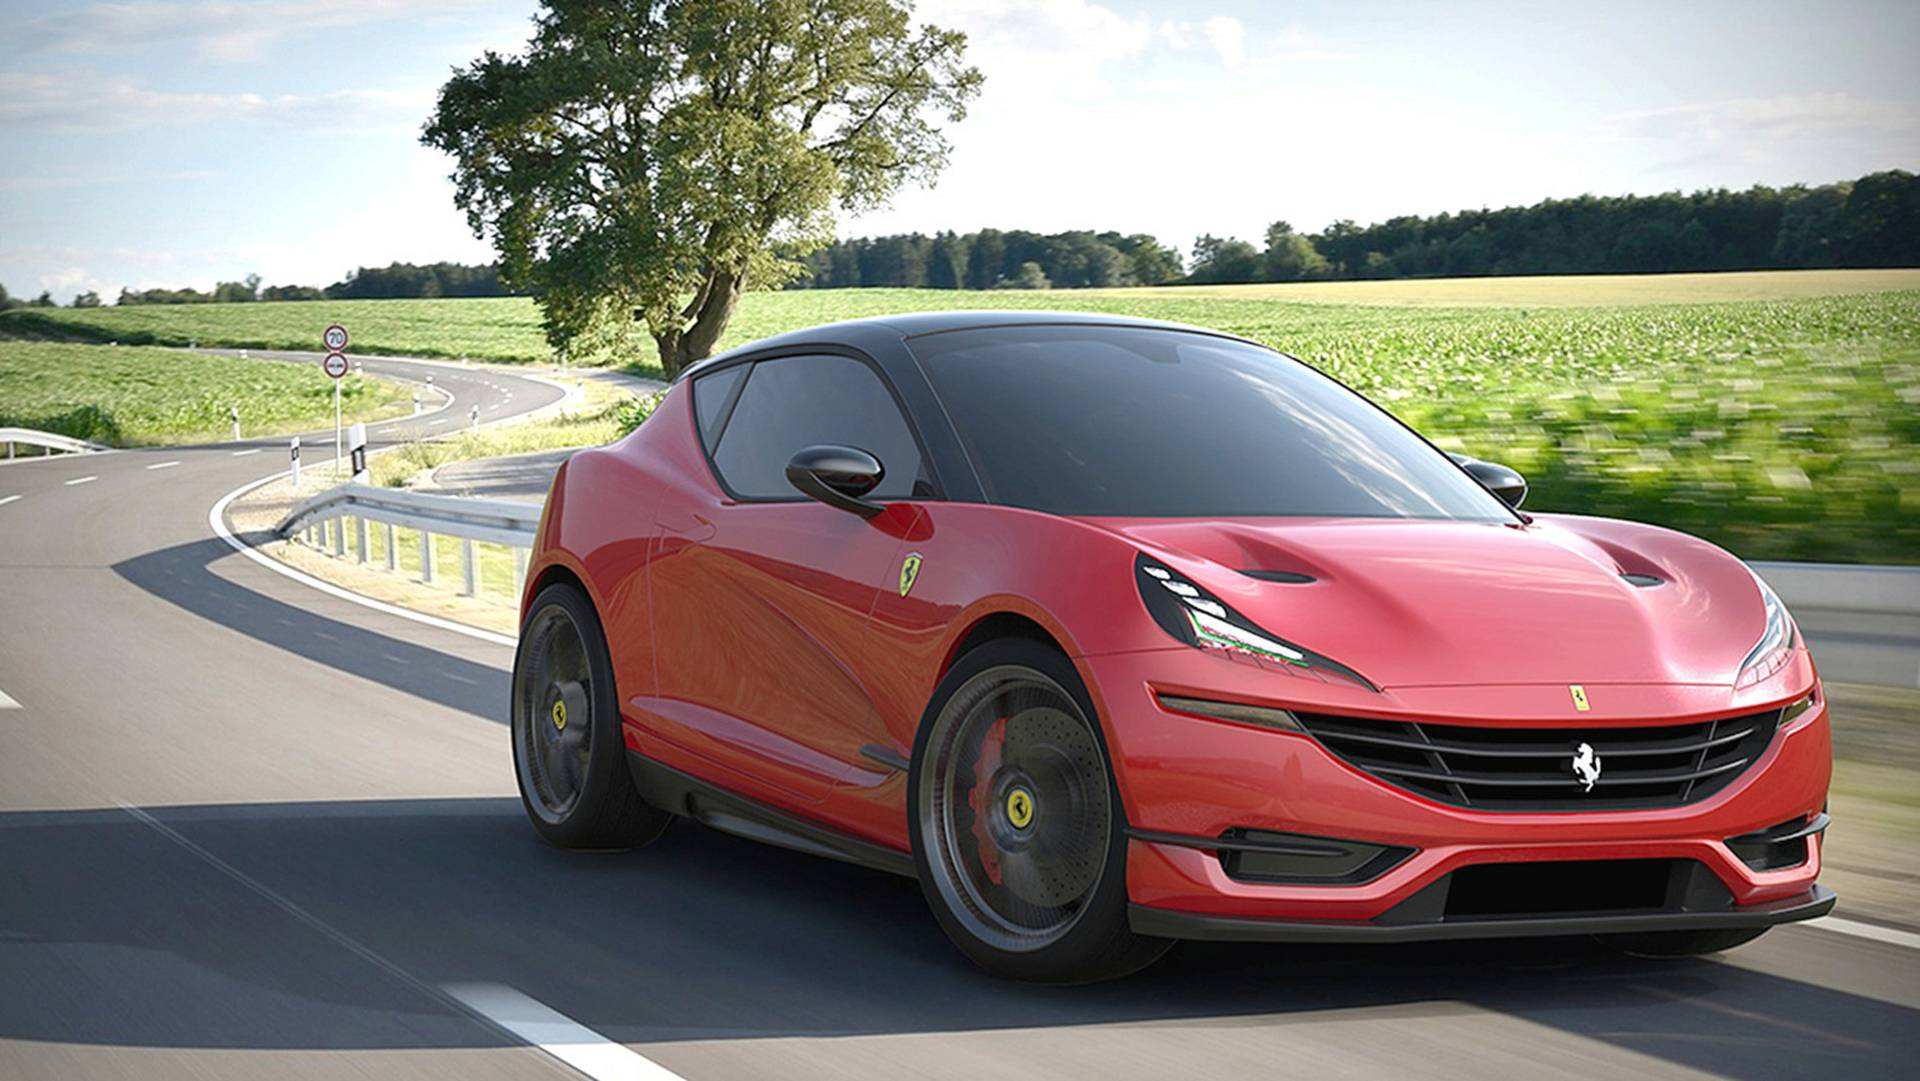 Ferrari hatchback - Rendering by Taekang Lee